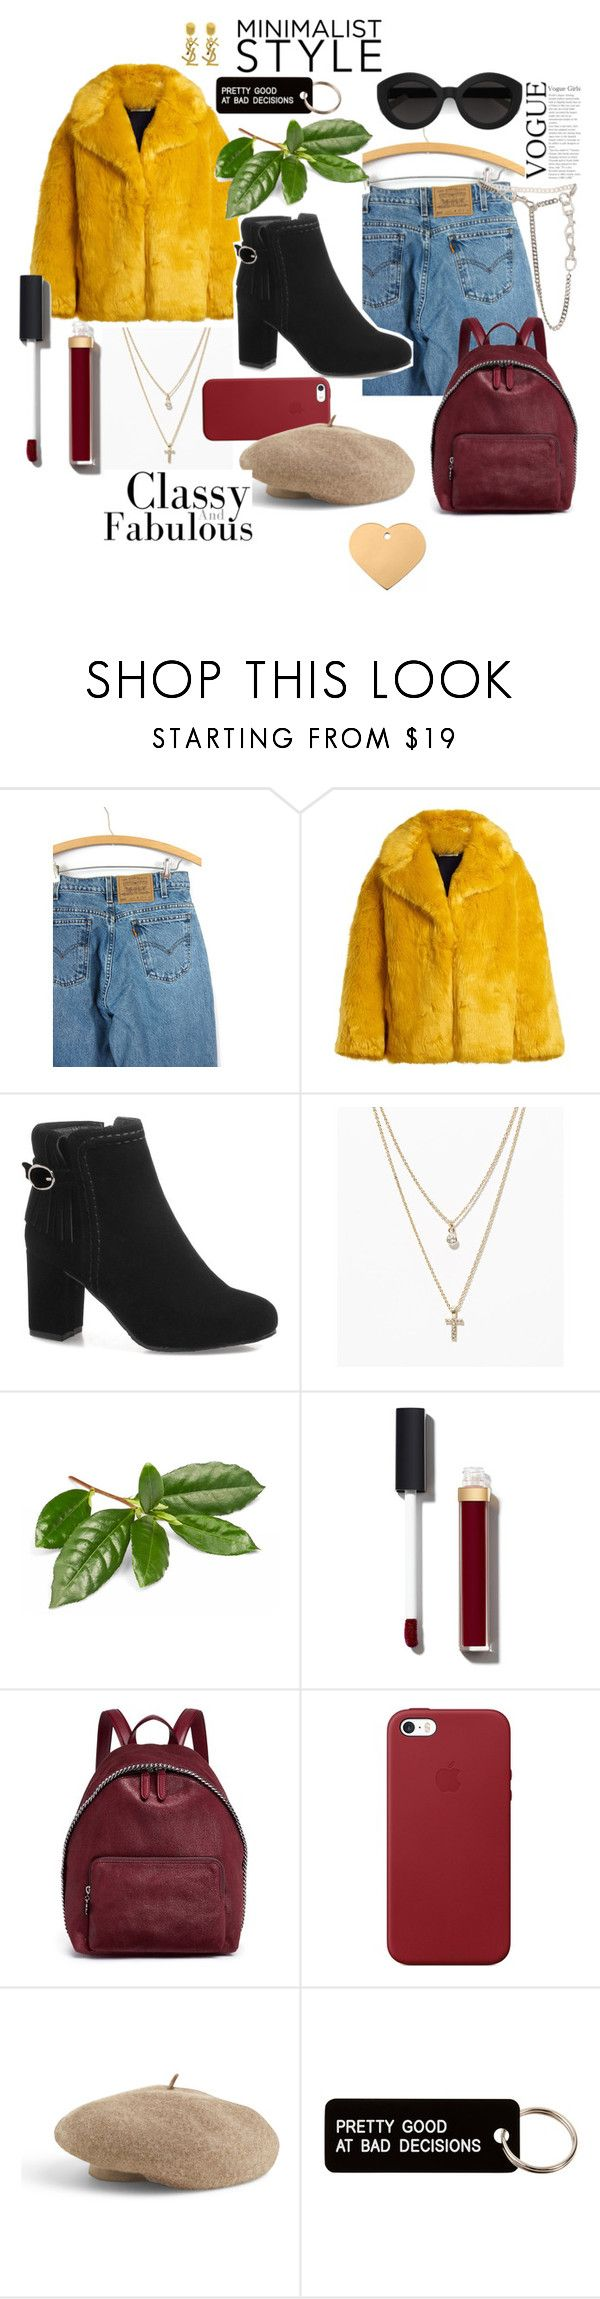 """ehgdsialrudhb"" by lmmtwin ❤ liked on Polyvore featuring Levi's, Diane Von Furstenberg, LOFT, Chanel, STELLA McCARTNEY, Apple, Carla Zampatti, Venus, Various Projects and Christian Dior"